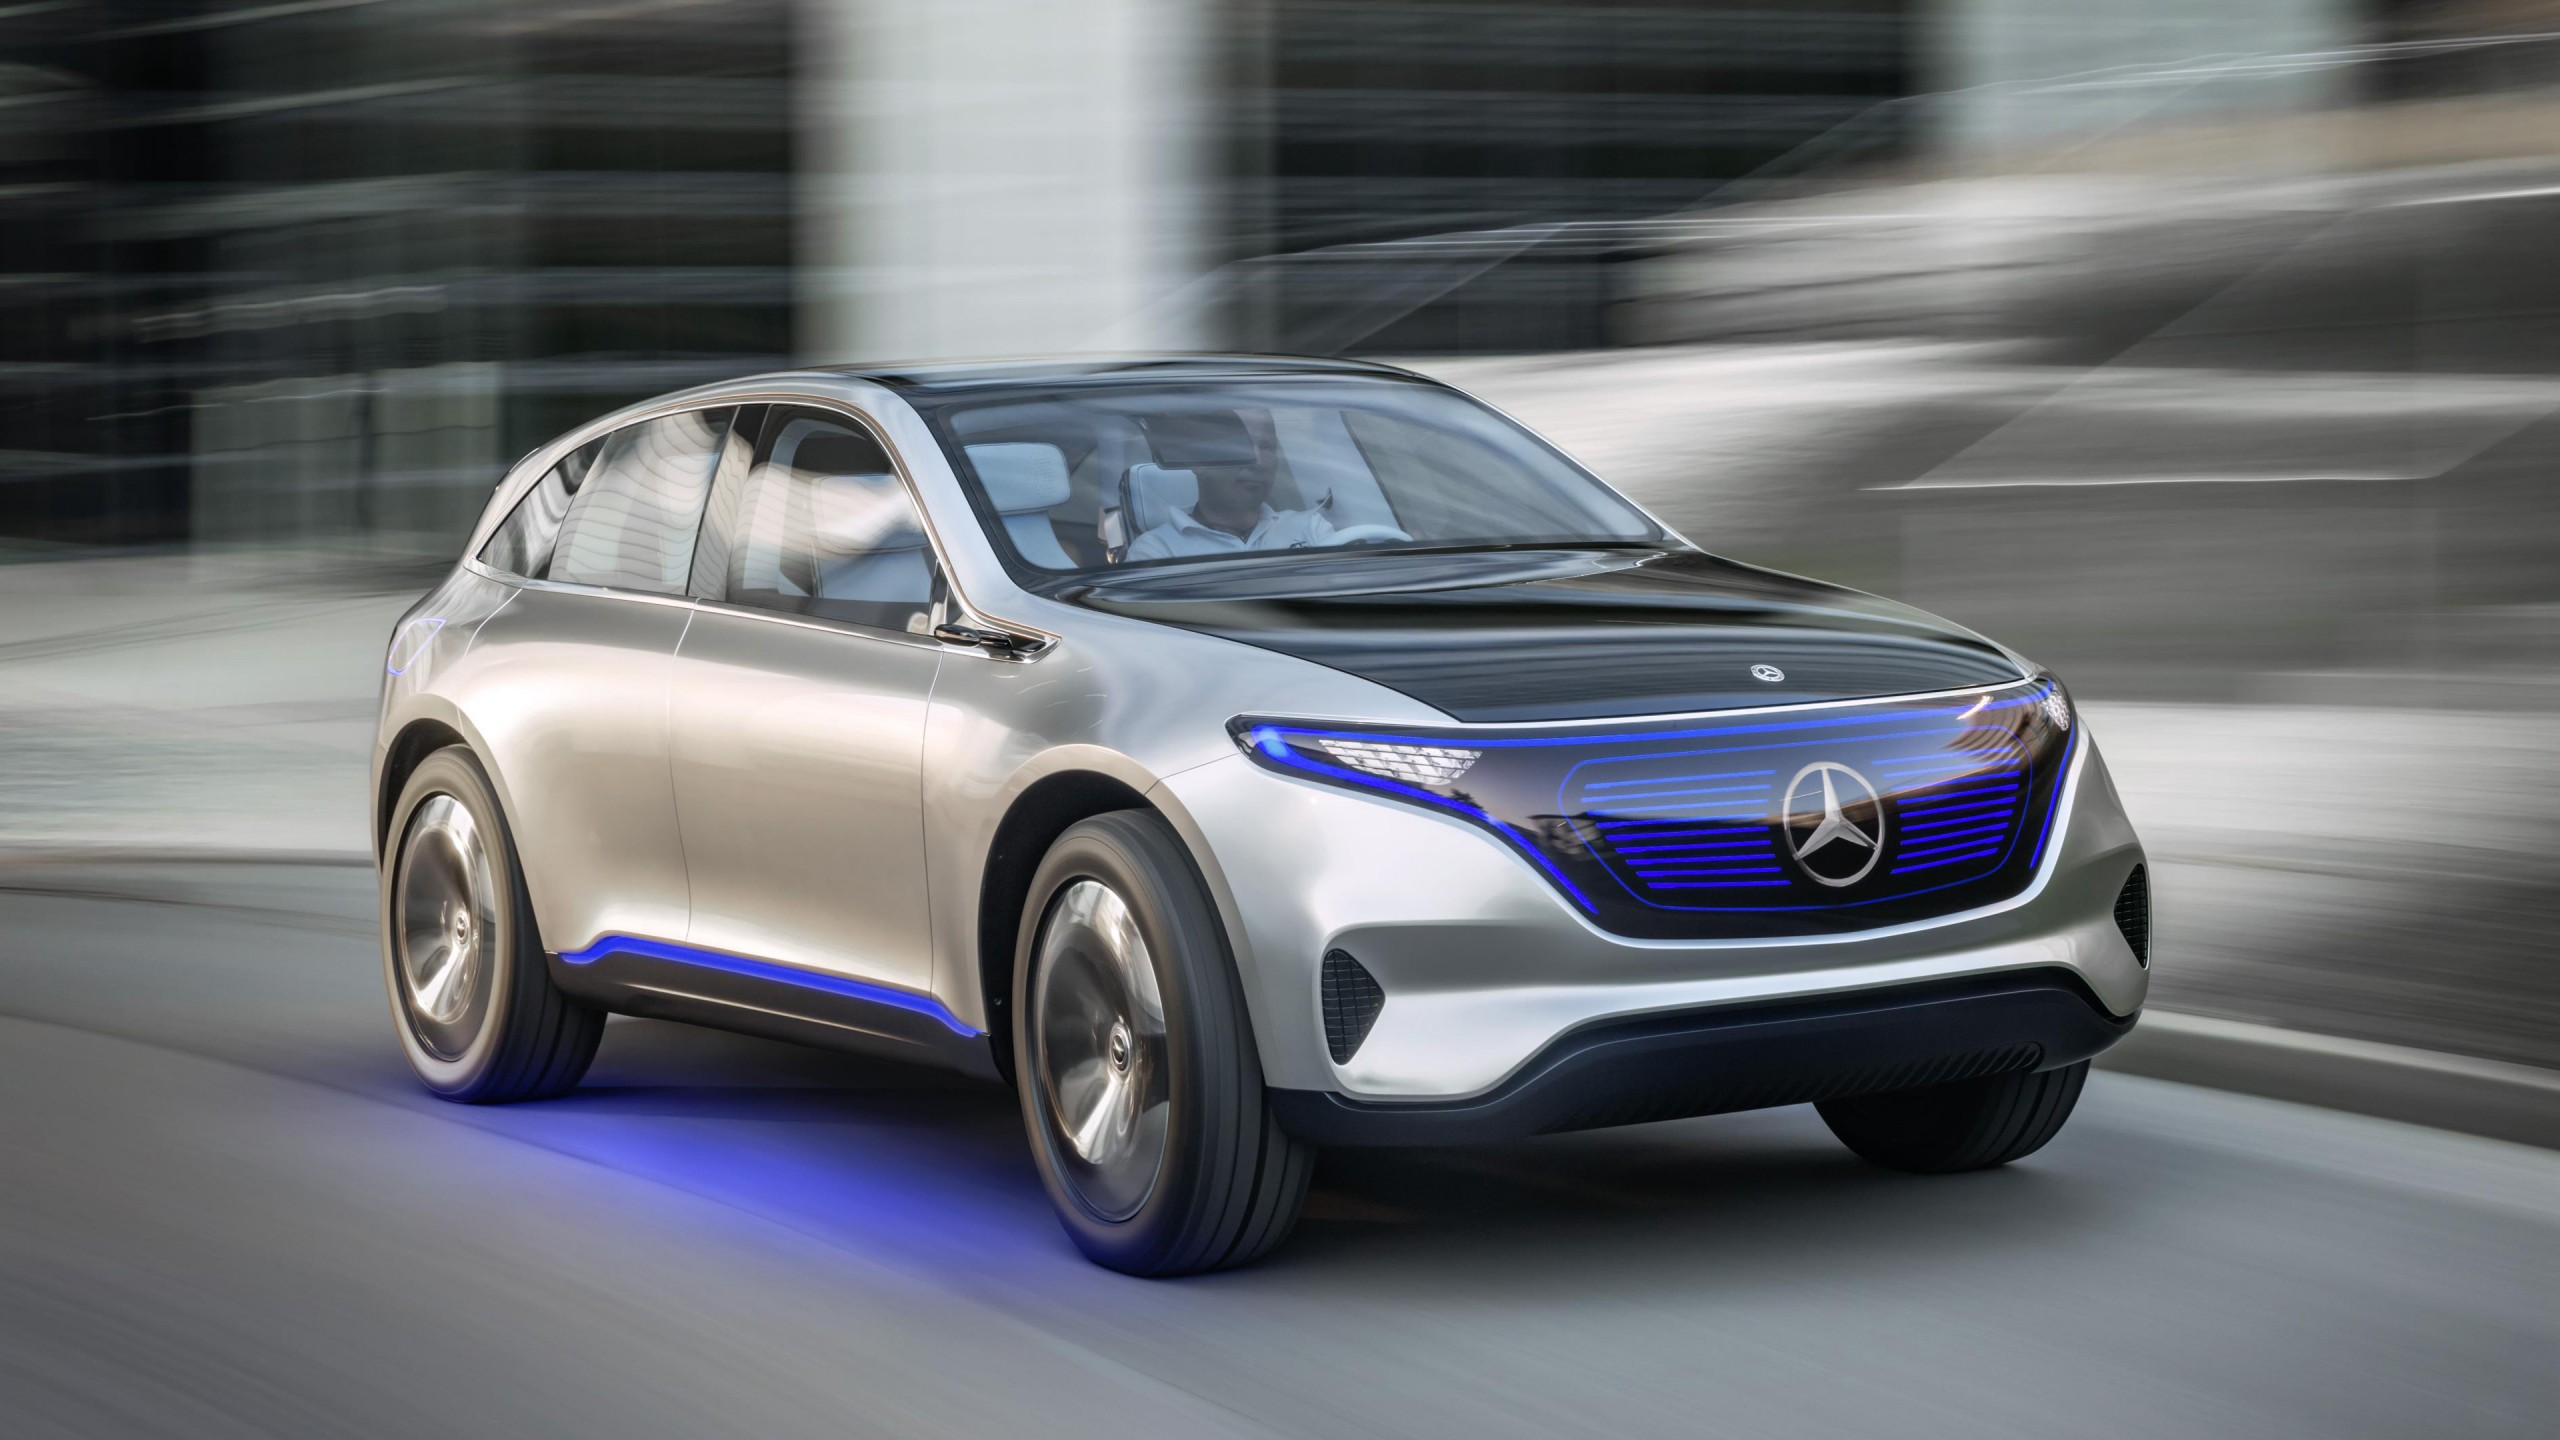 Mercedes benz eq electric suv 4k wallpaper hd car wallpapers for Mercedes benz cars pictures